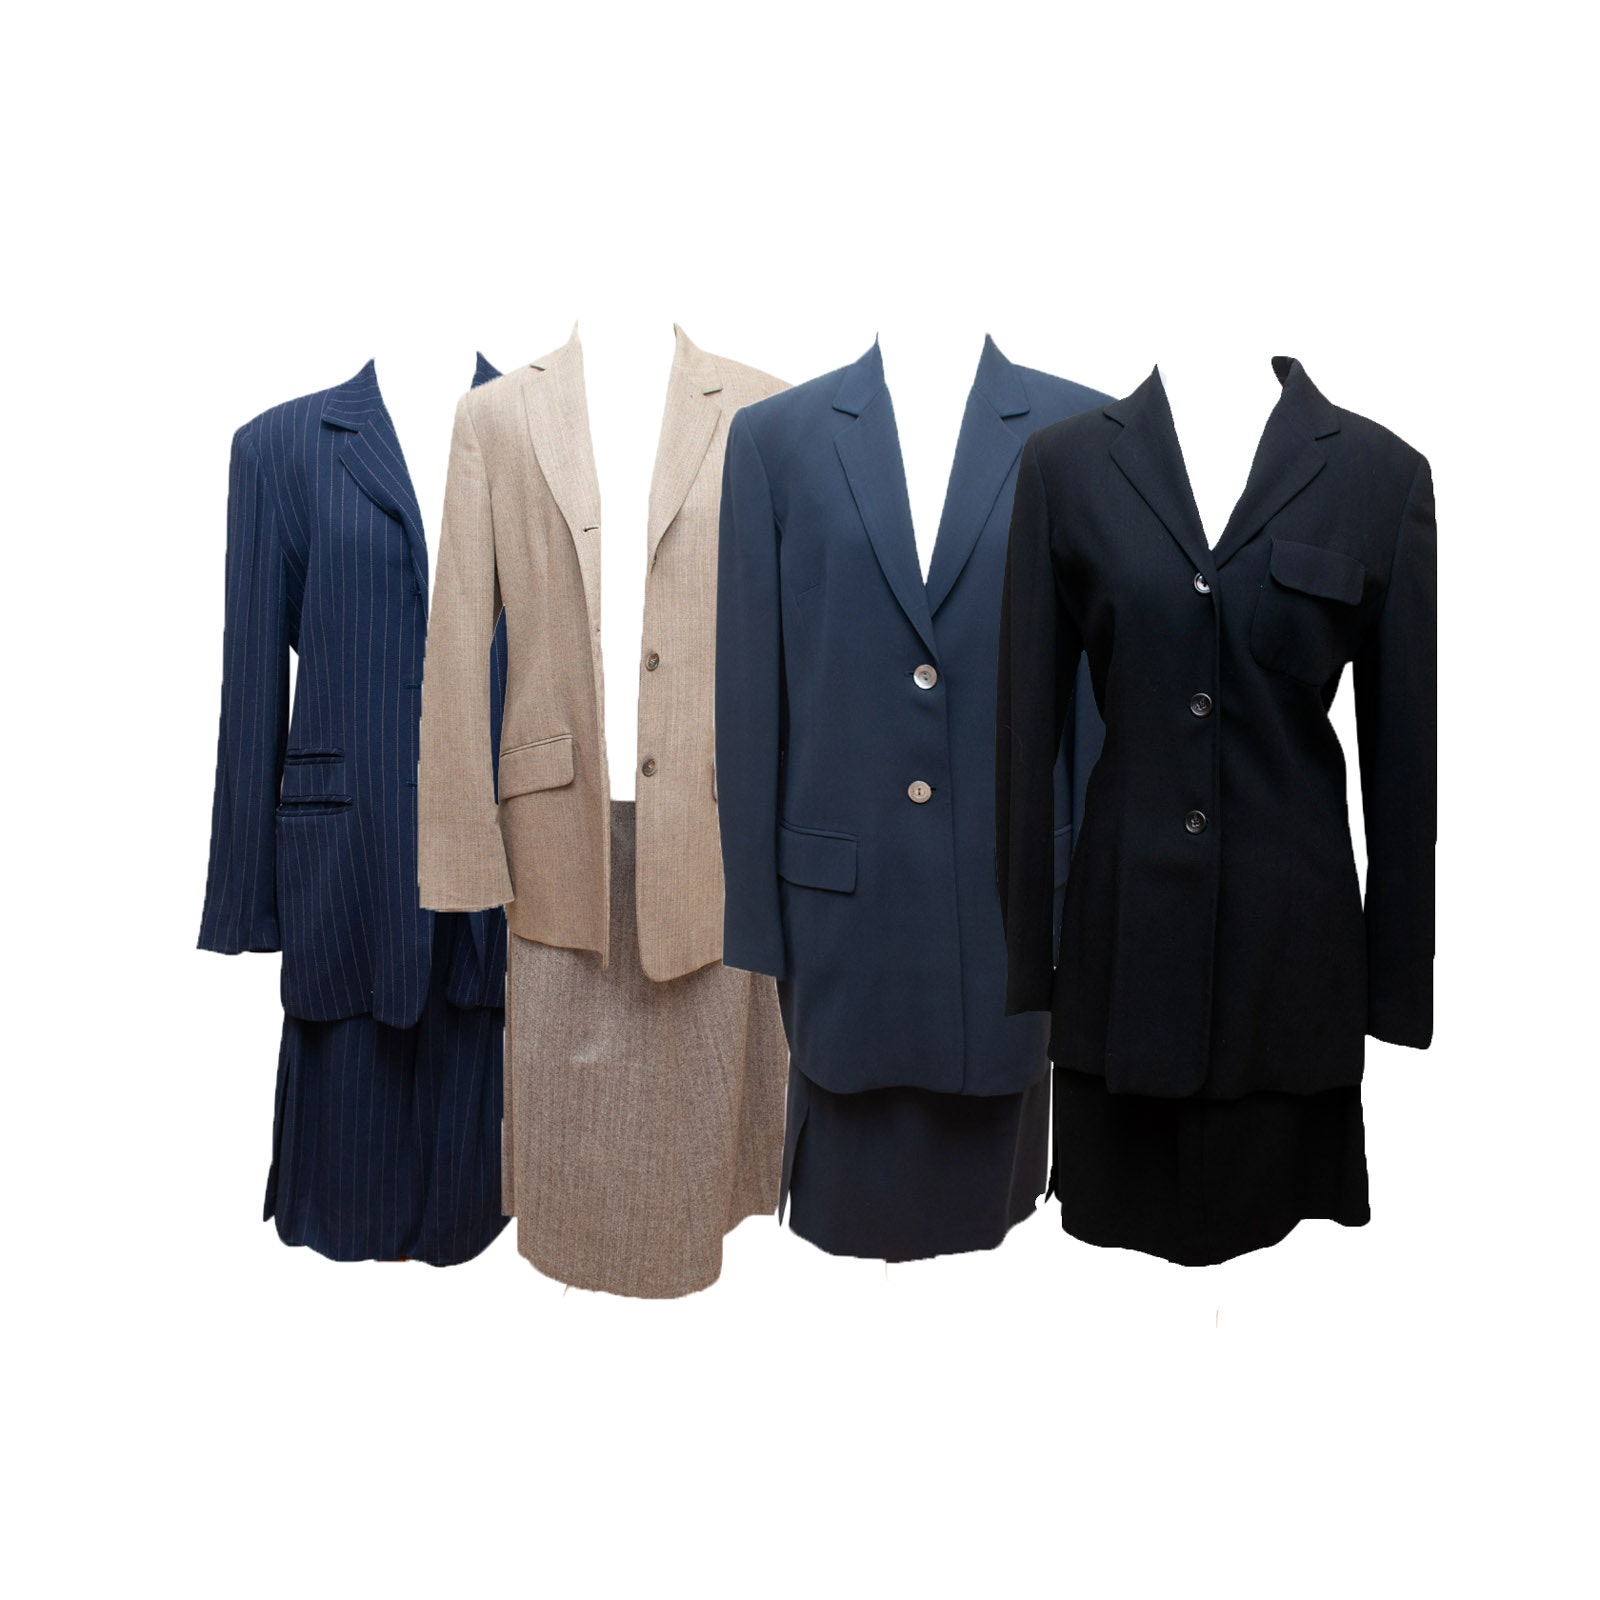 Women's Skirt Suits Including Brooks Brothers and JH Collectibles